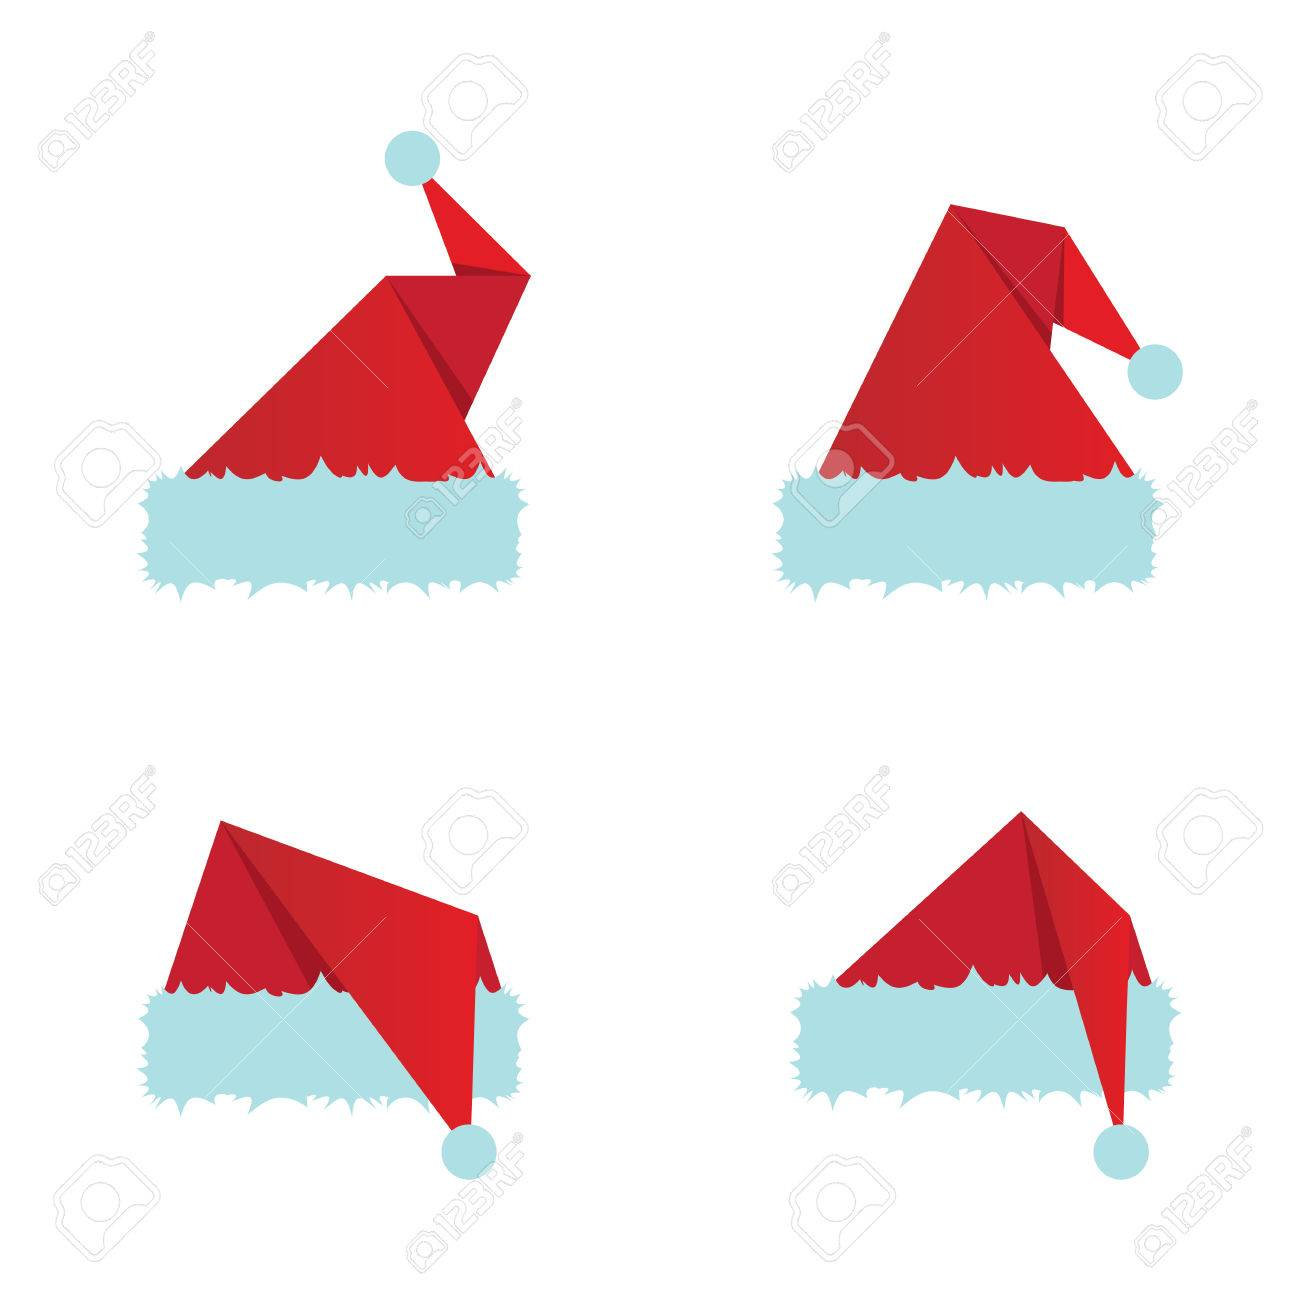 d5c57a84066a6 Red Santa Hat Flat Icon. Vector Illustration Royalty Free Cliparts ...